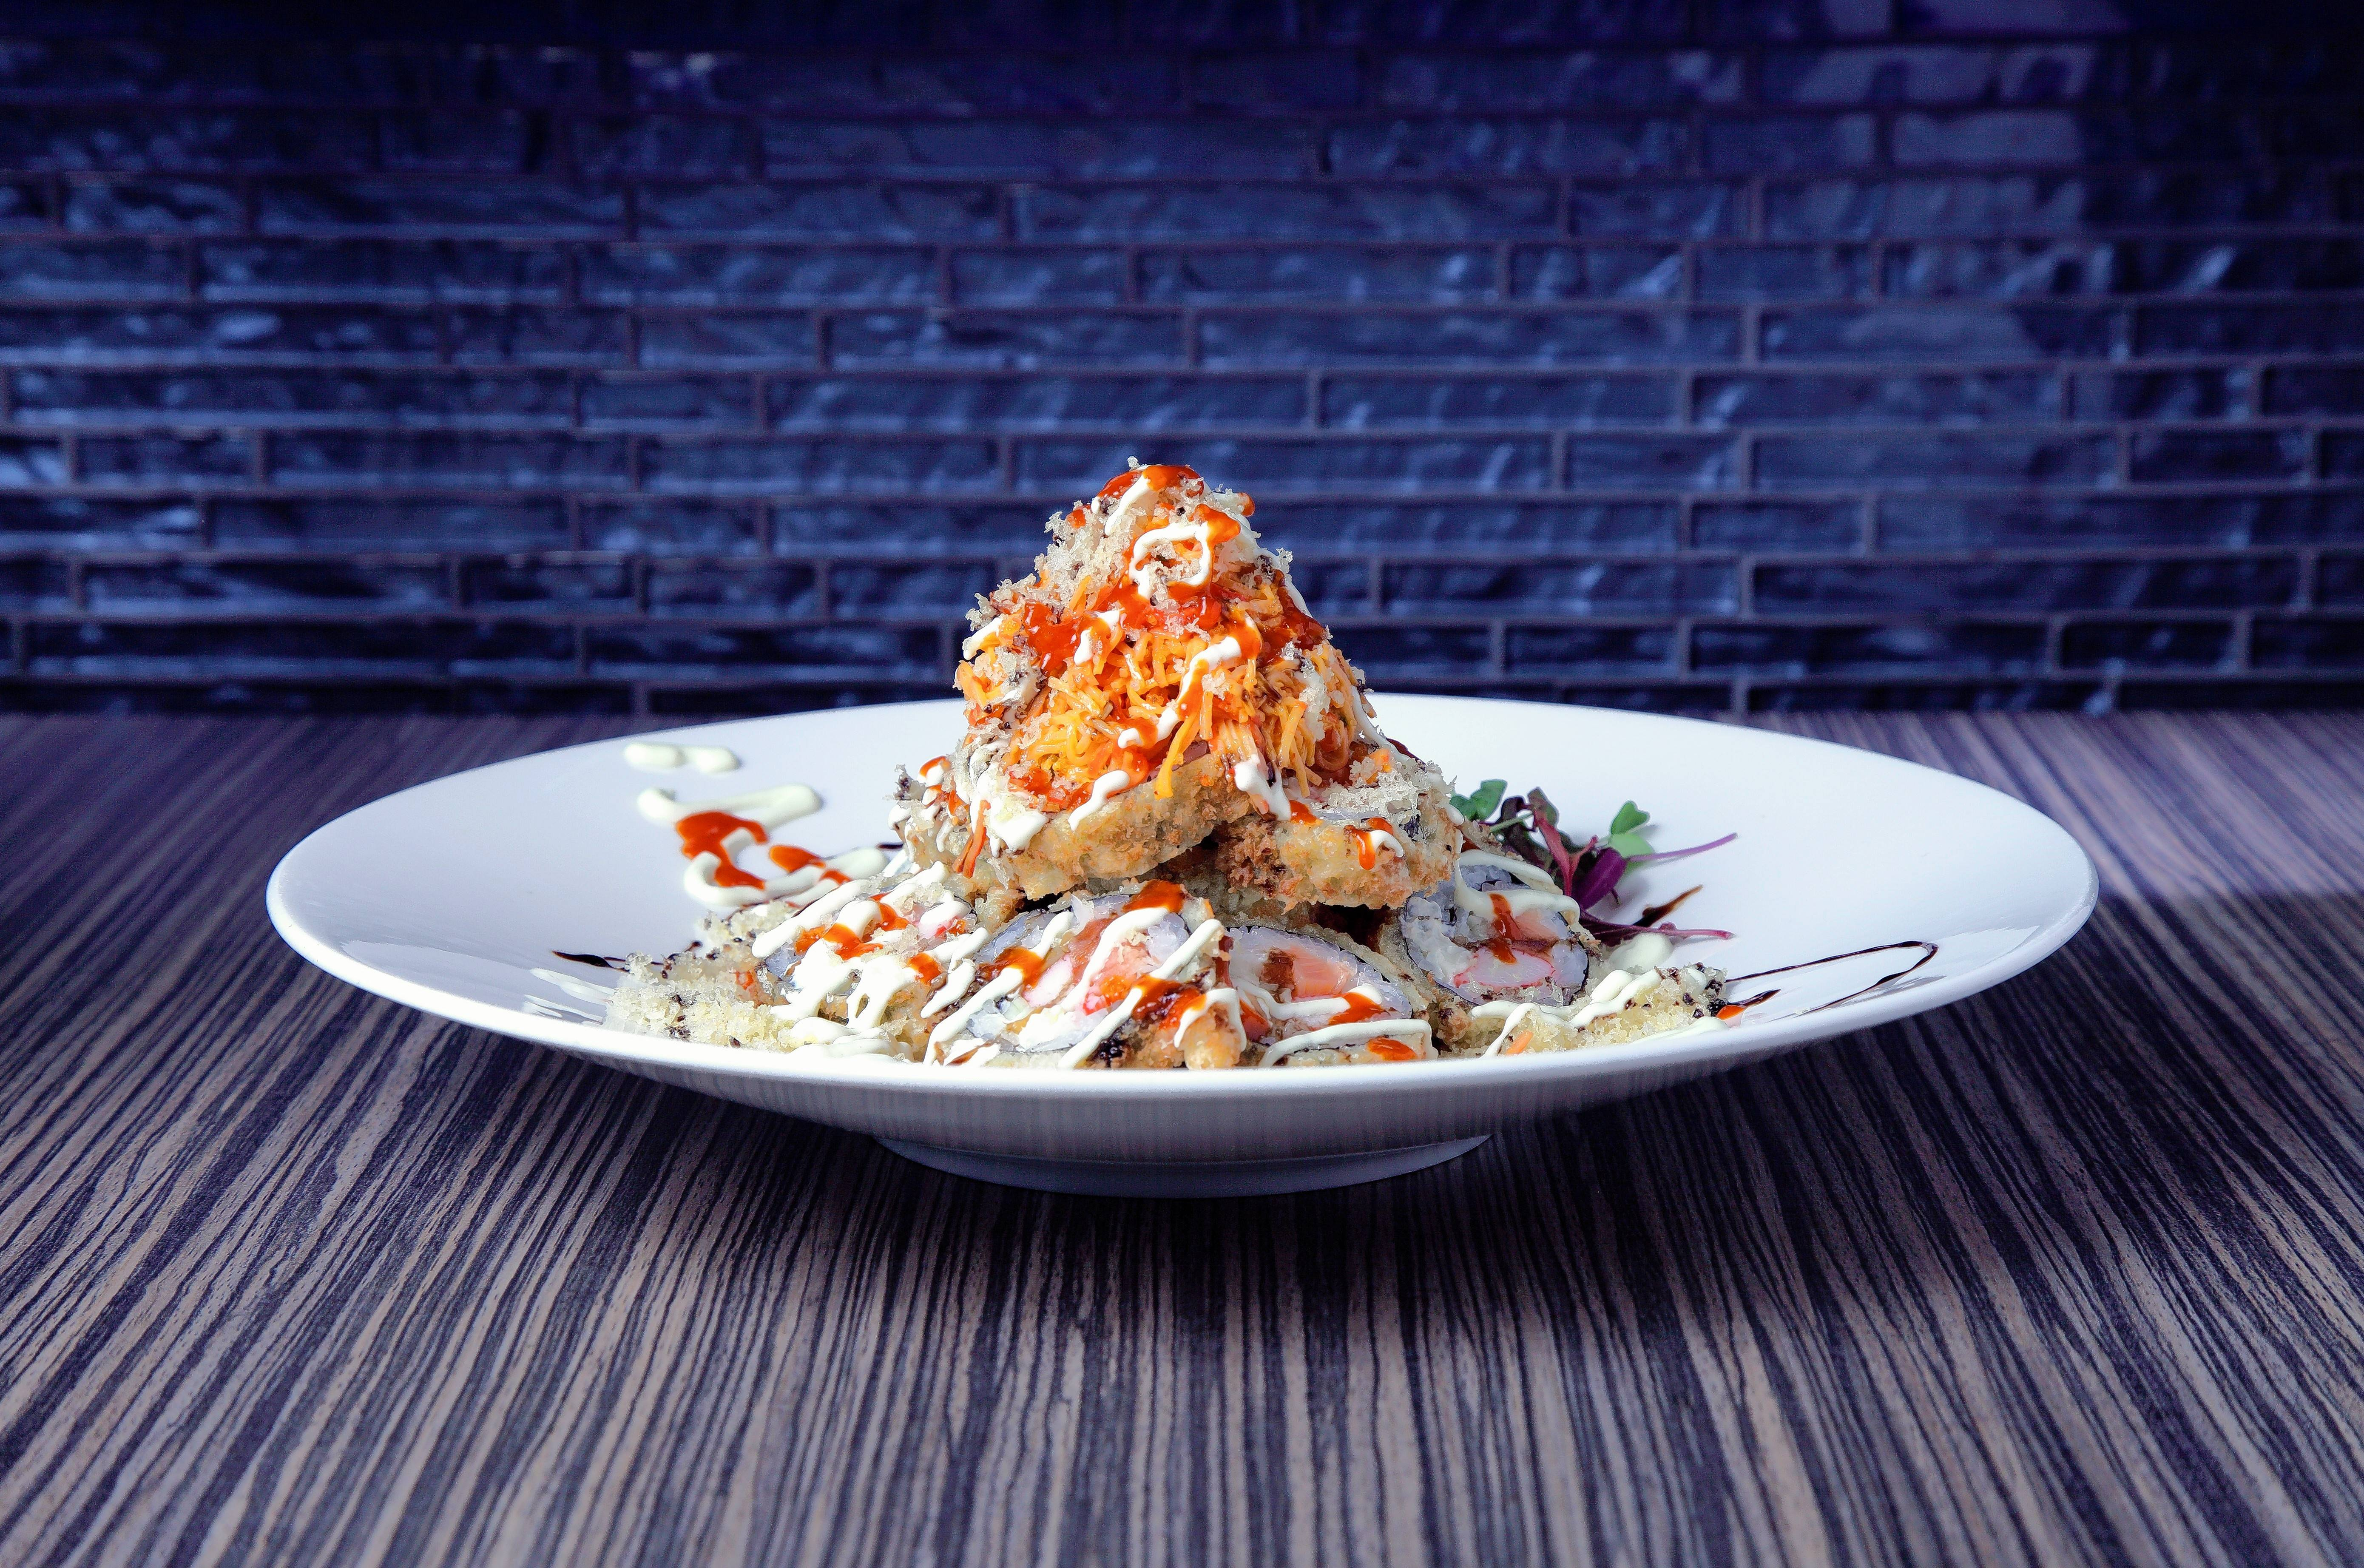 The Volcano maki does have wasabi mayo, sriracha and spicy crab, but Shakou doesn't label it as spicy. Do you dare?